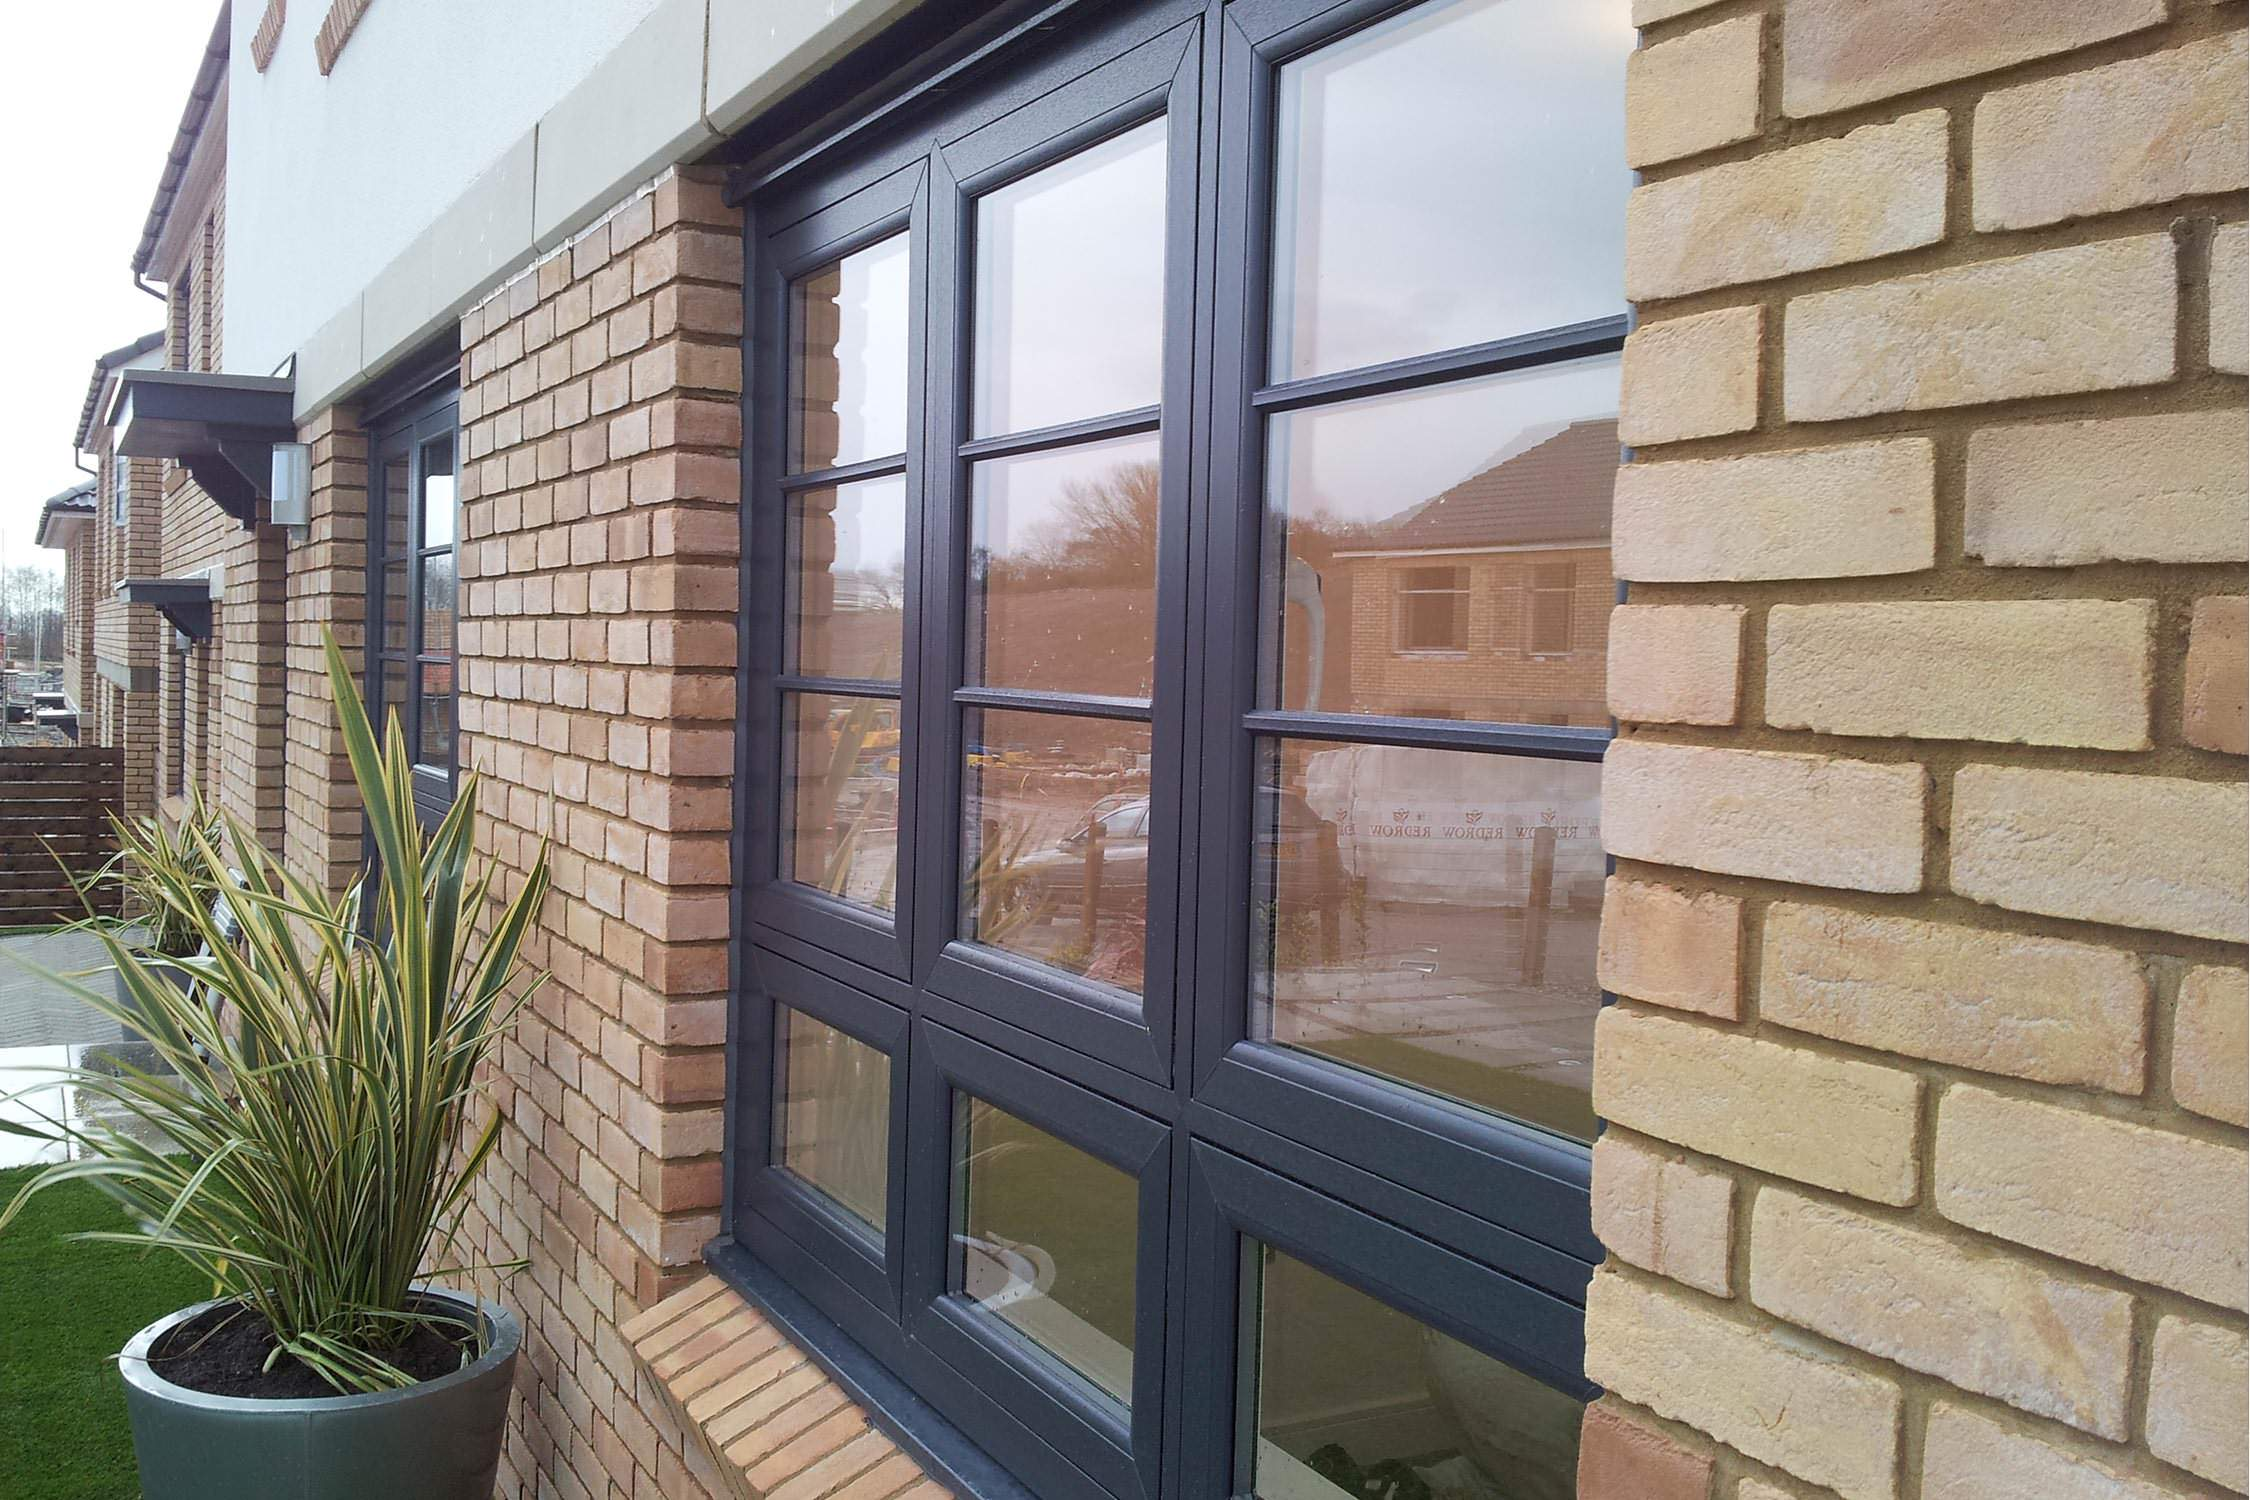 double glazing a 3 bed house uk